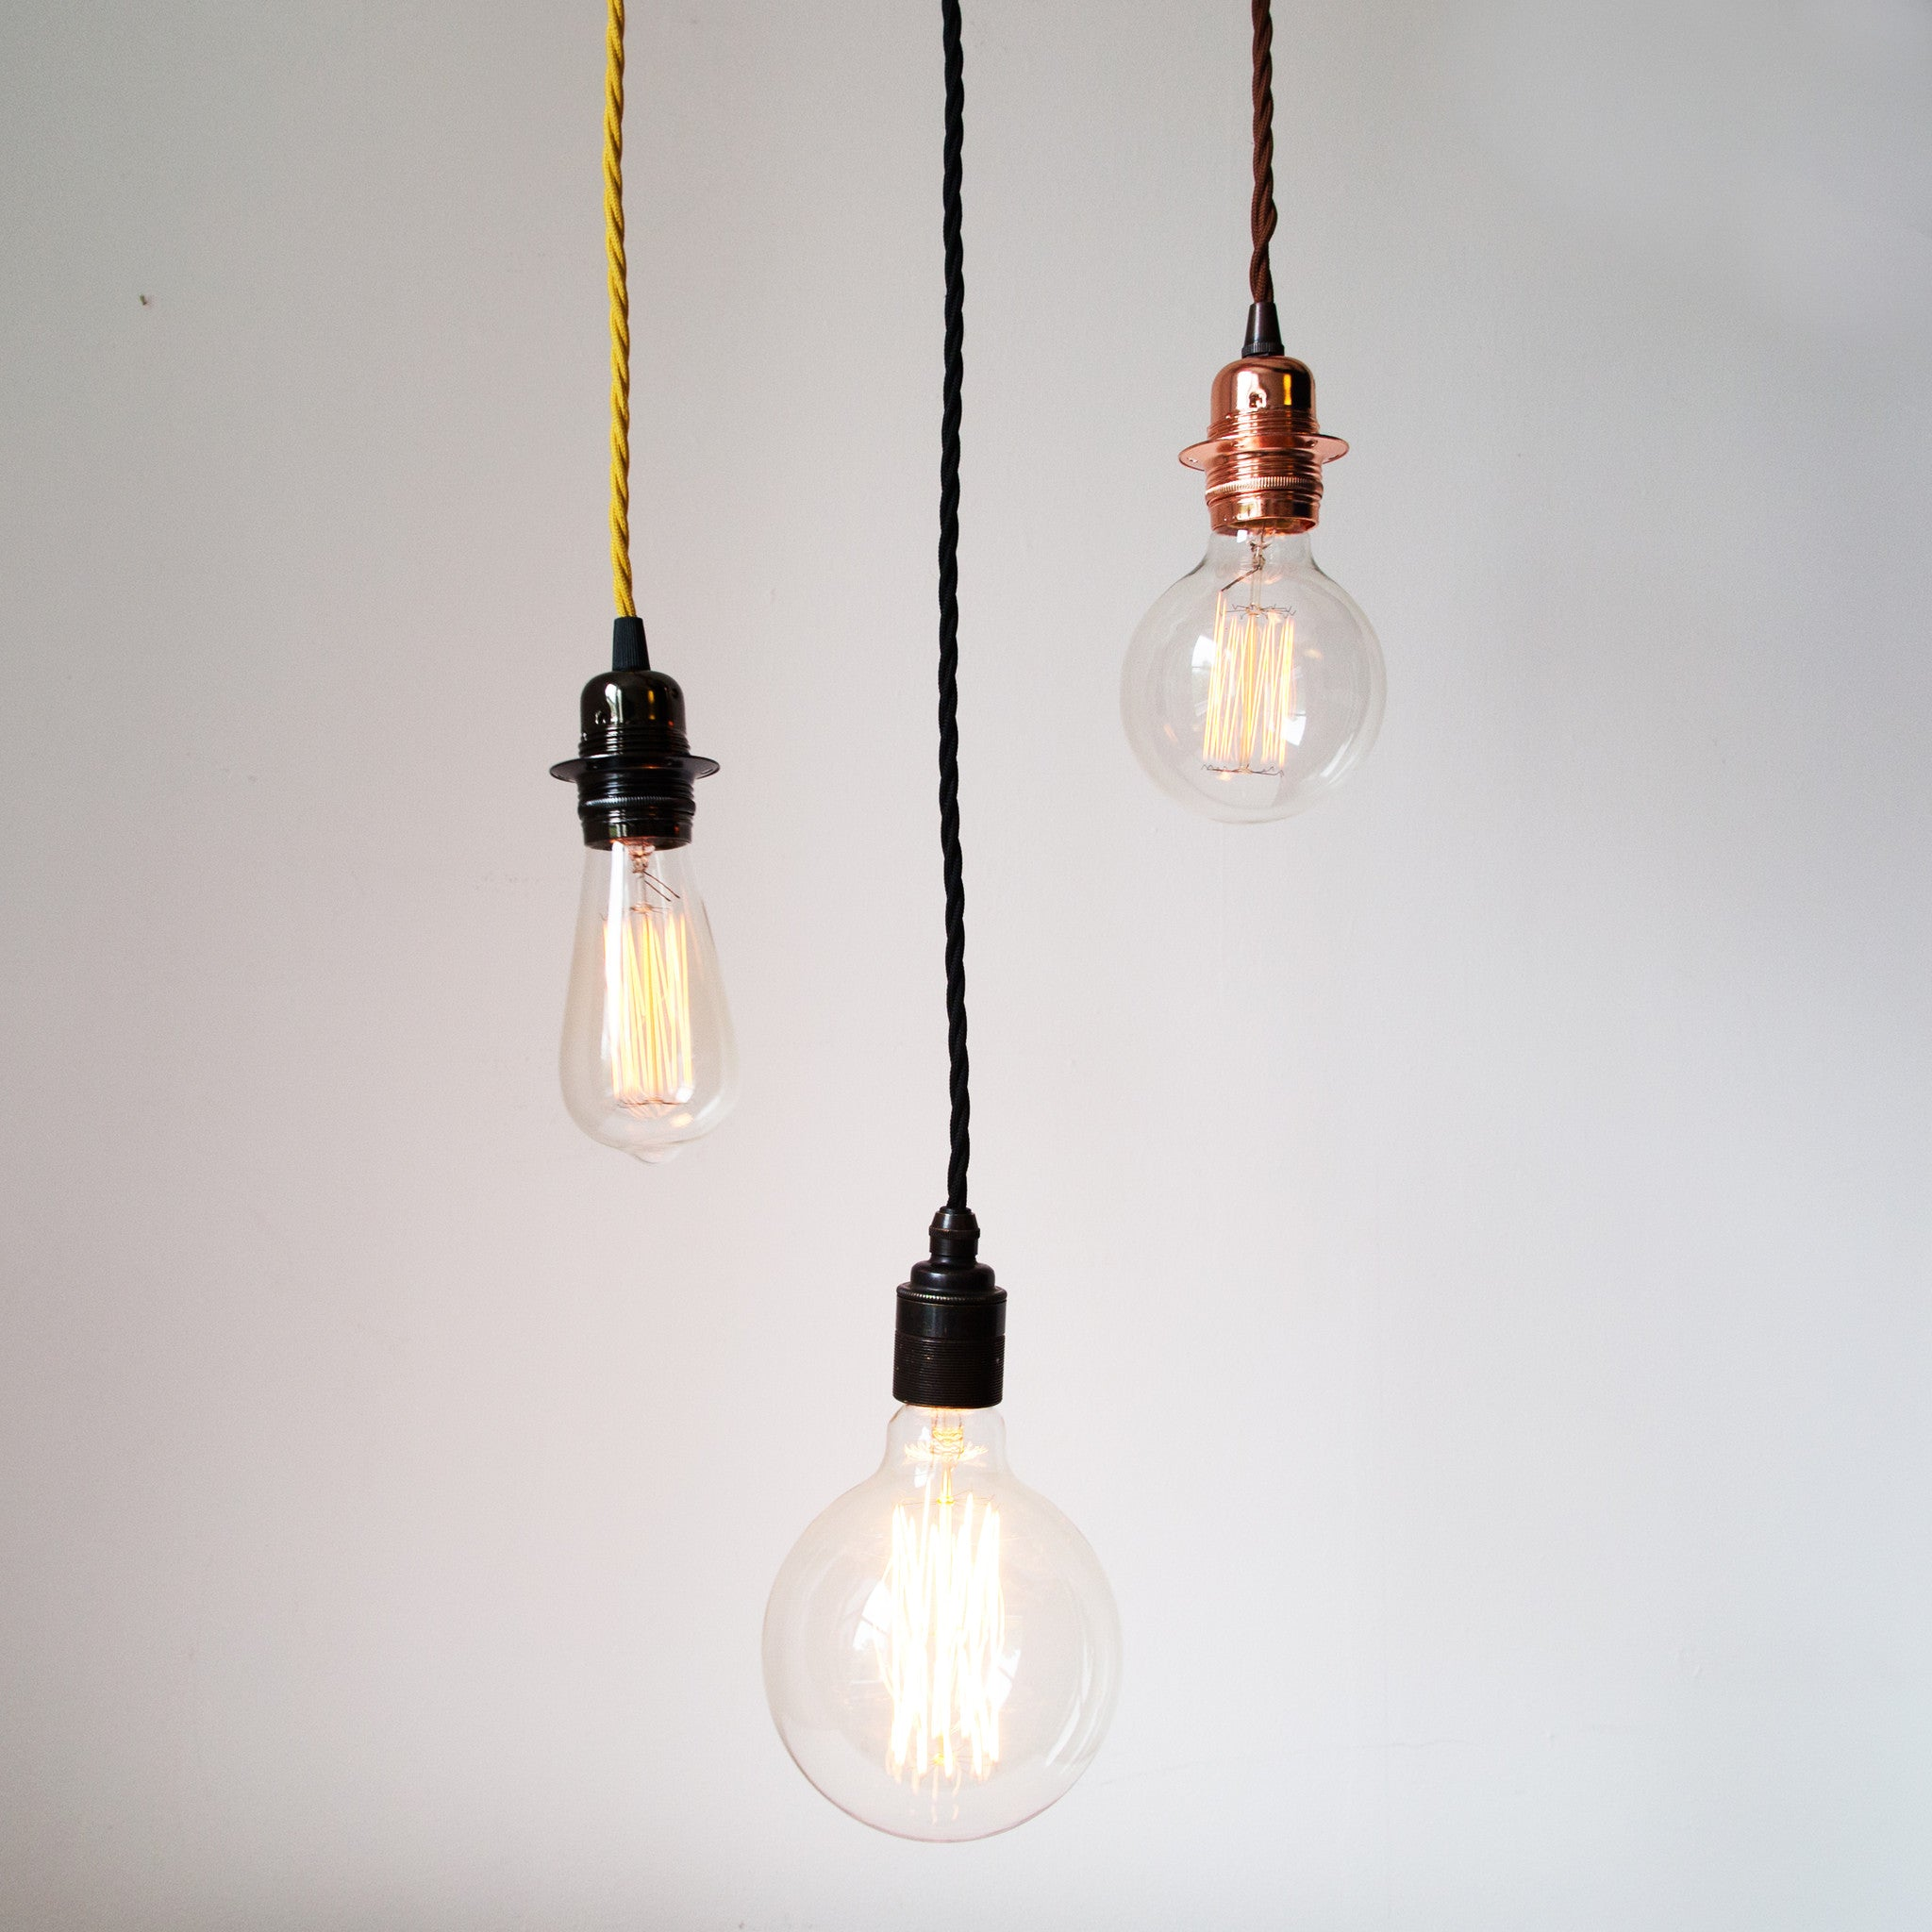 Large Squirrel Cage Light bulb - Att Pynta